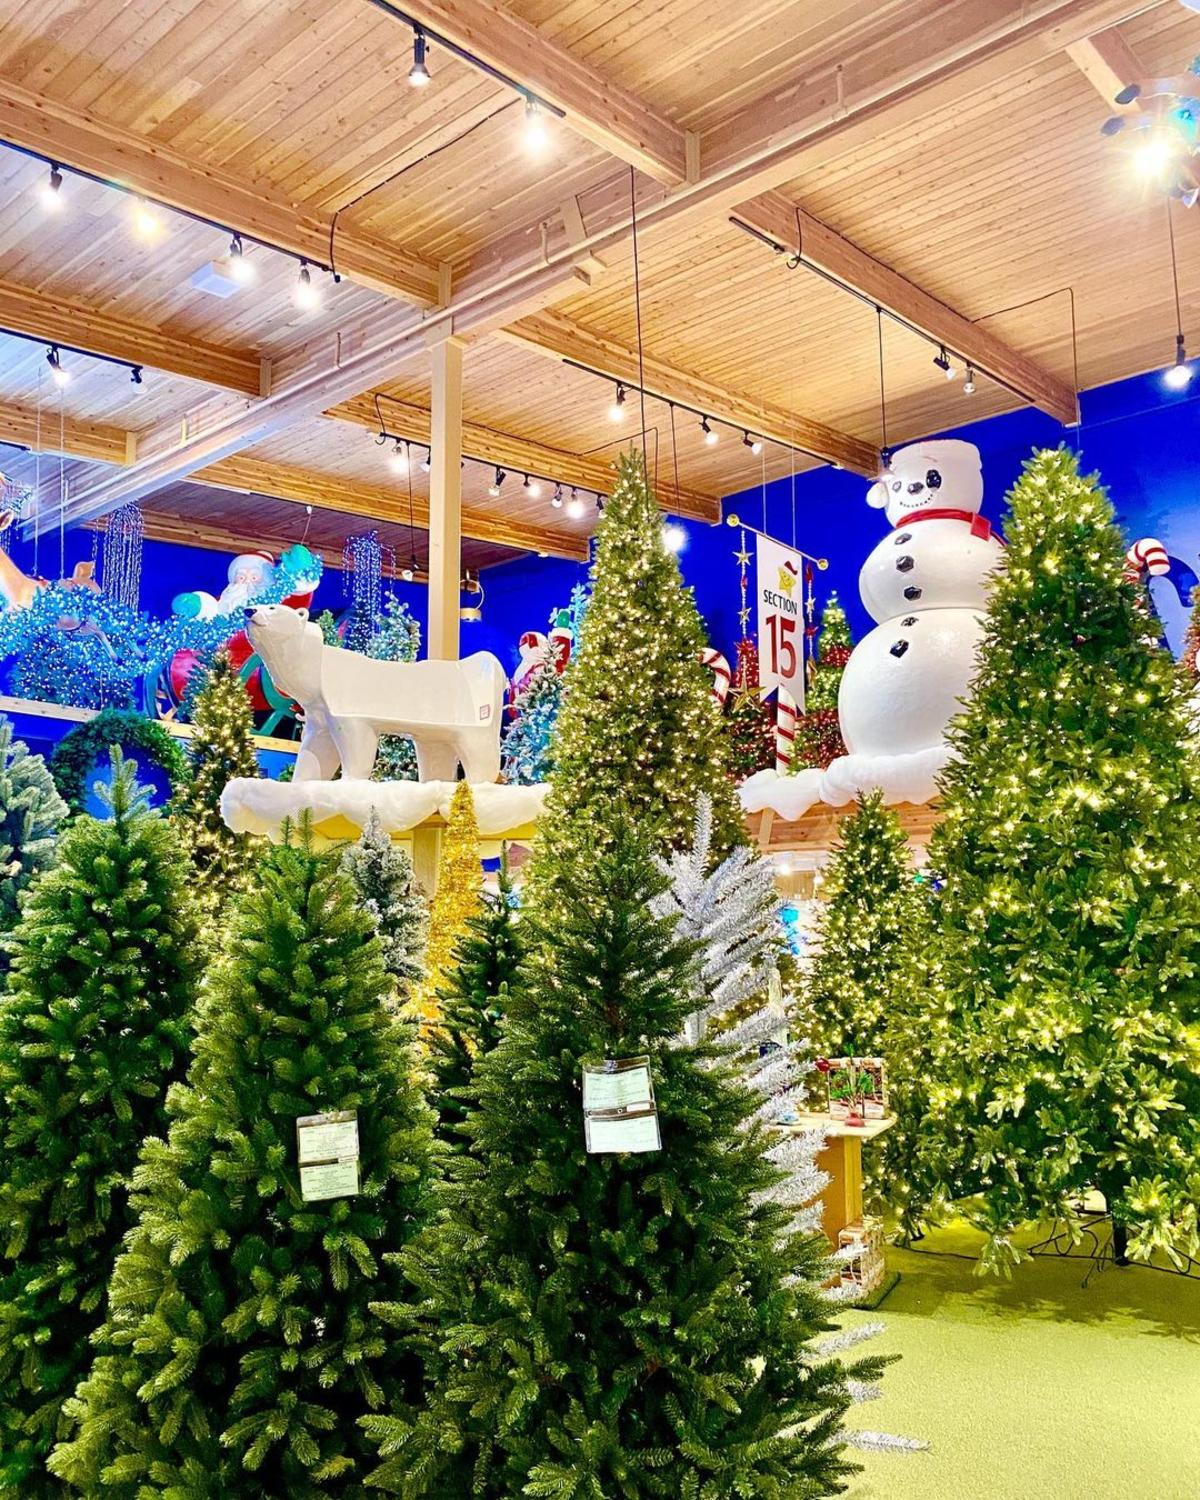 Christmas trees and other holiday decorations in the brightly-lit showroom at Bronner's CHRISTmas Wonderland in Frankenmuth